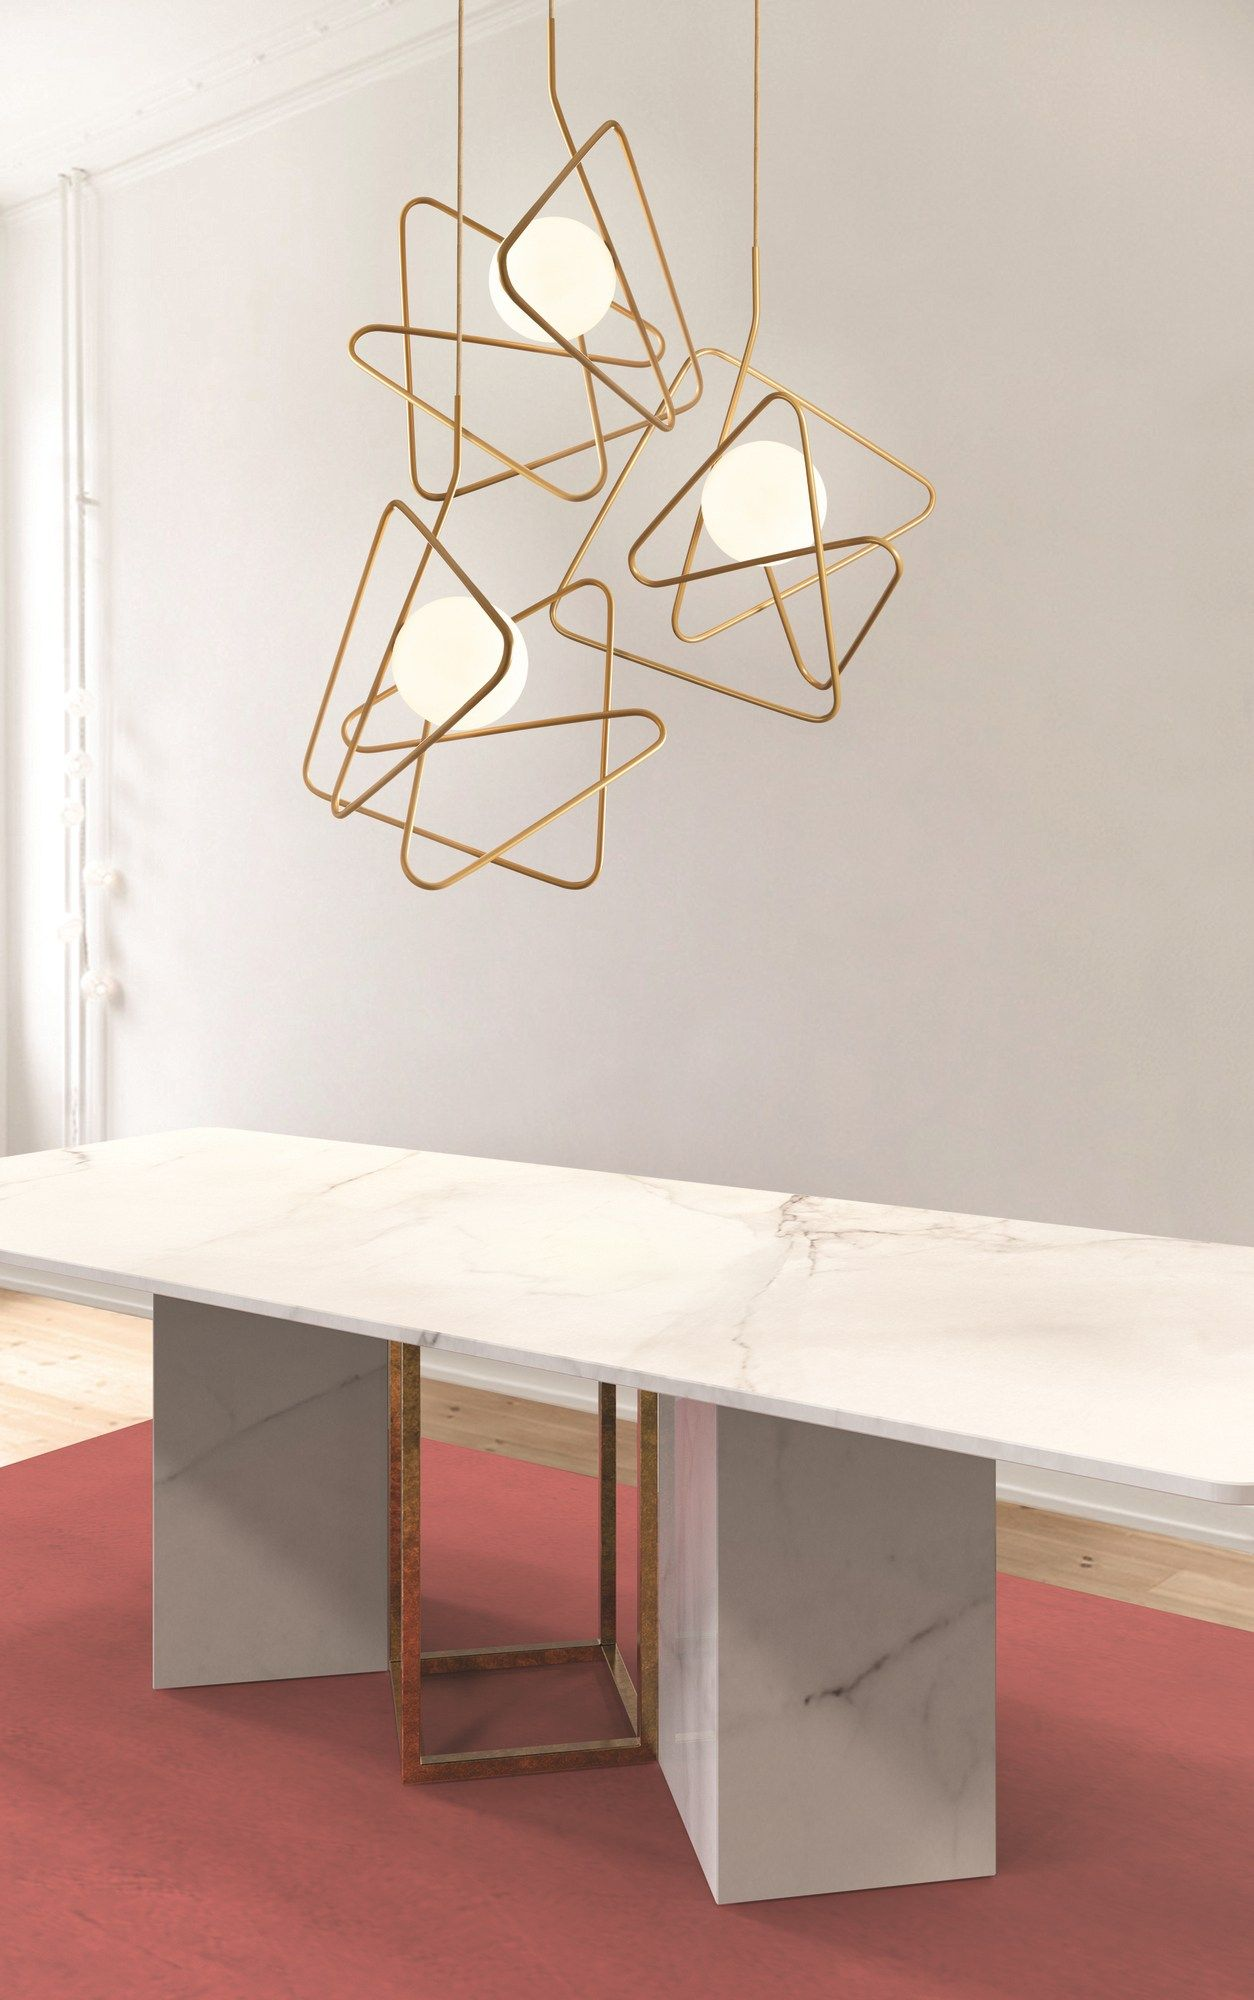 Explore Modern Lamps, Modern Lighting, And More!